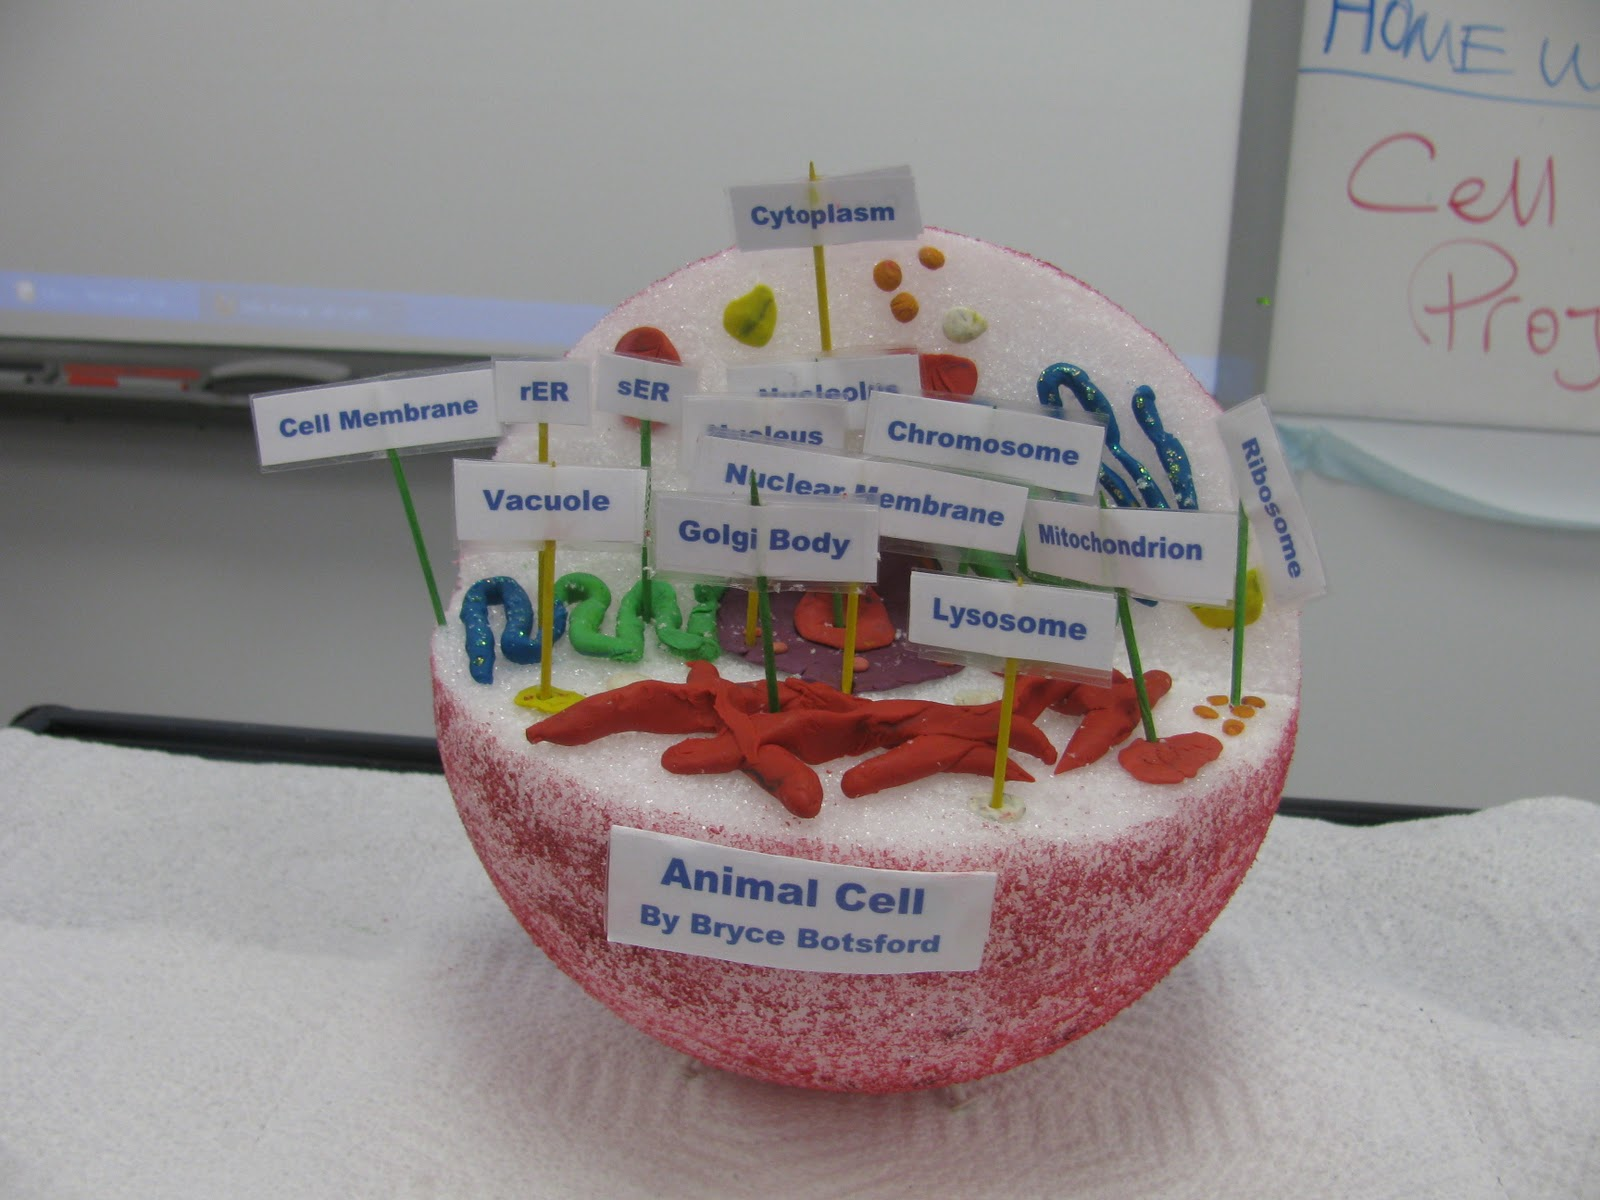 Animal Cell 3D Science Project http://mscorson.blogspot.com/2011/09/cell-model-project.html